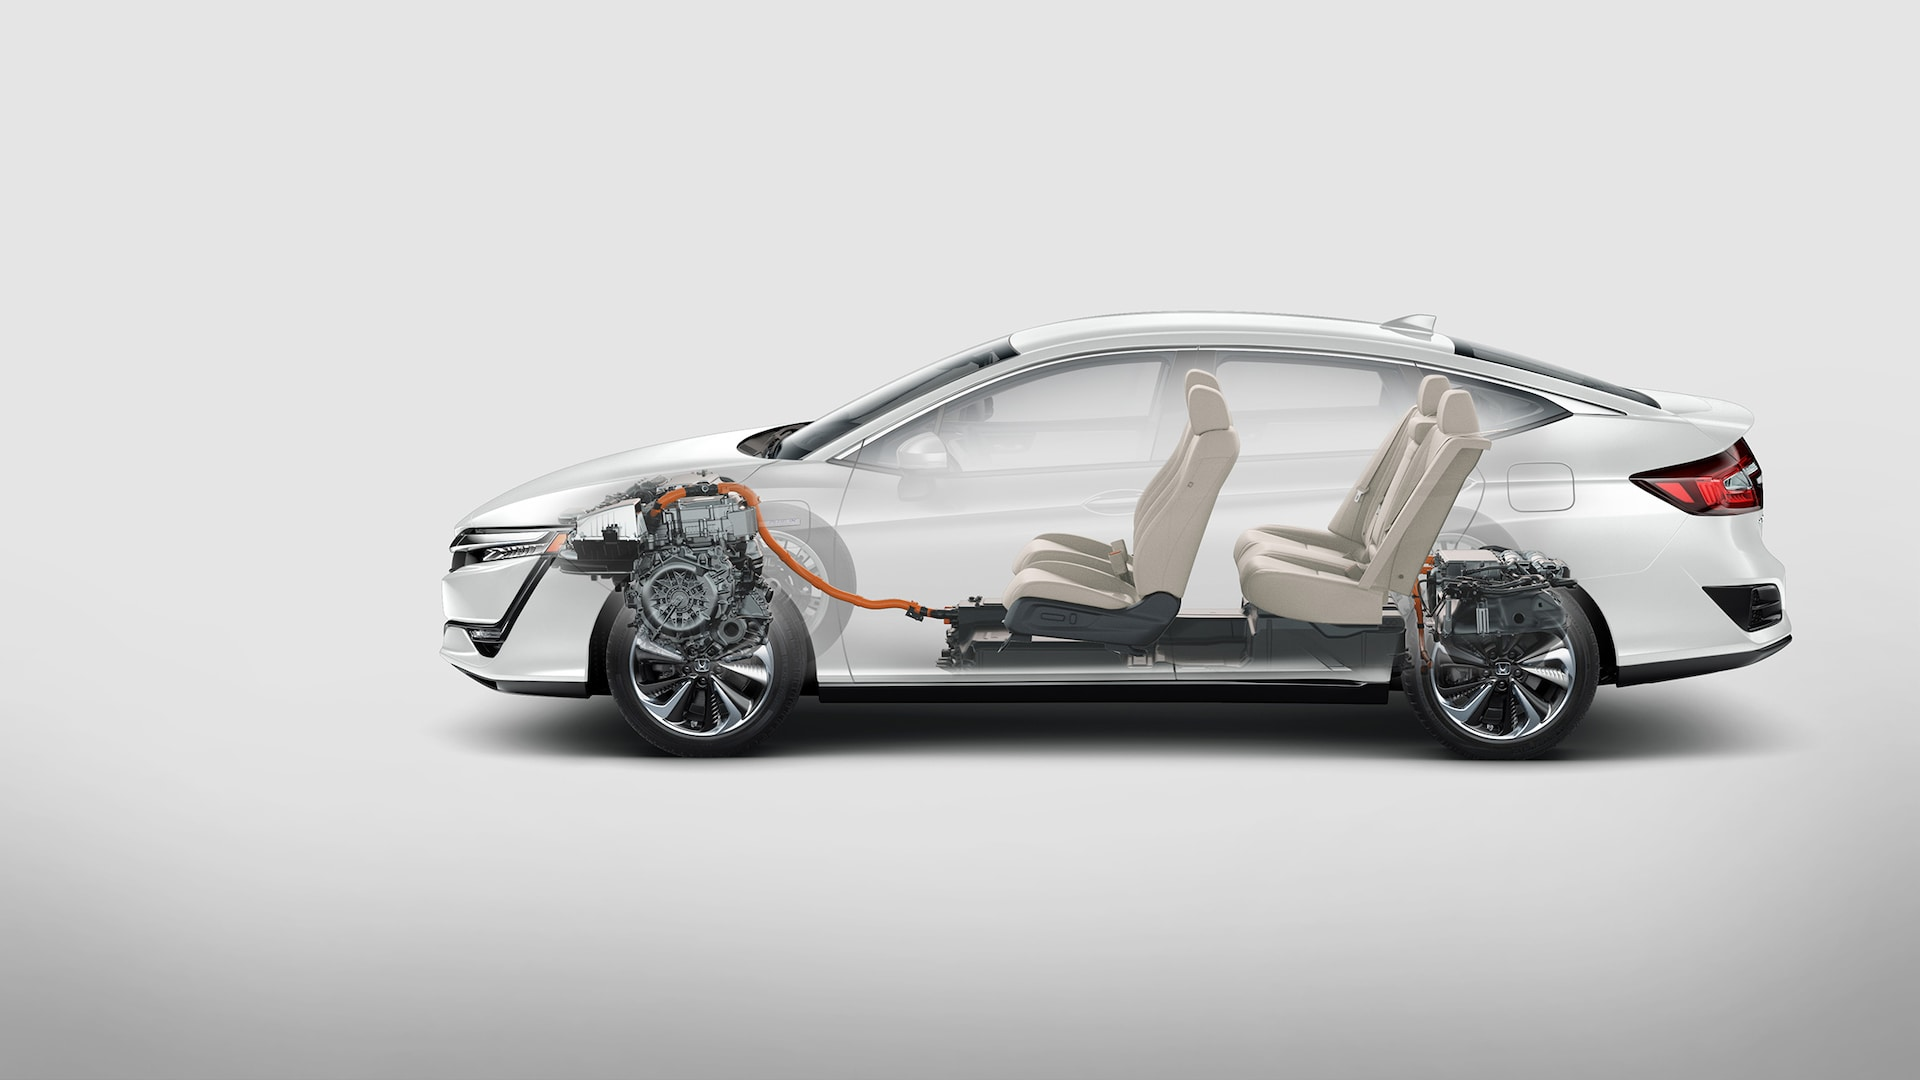 Side profile of 2021 Clarity Plug-In Hybrid with interior shown.